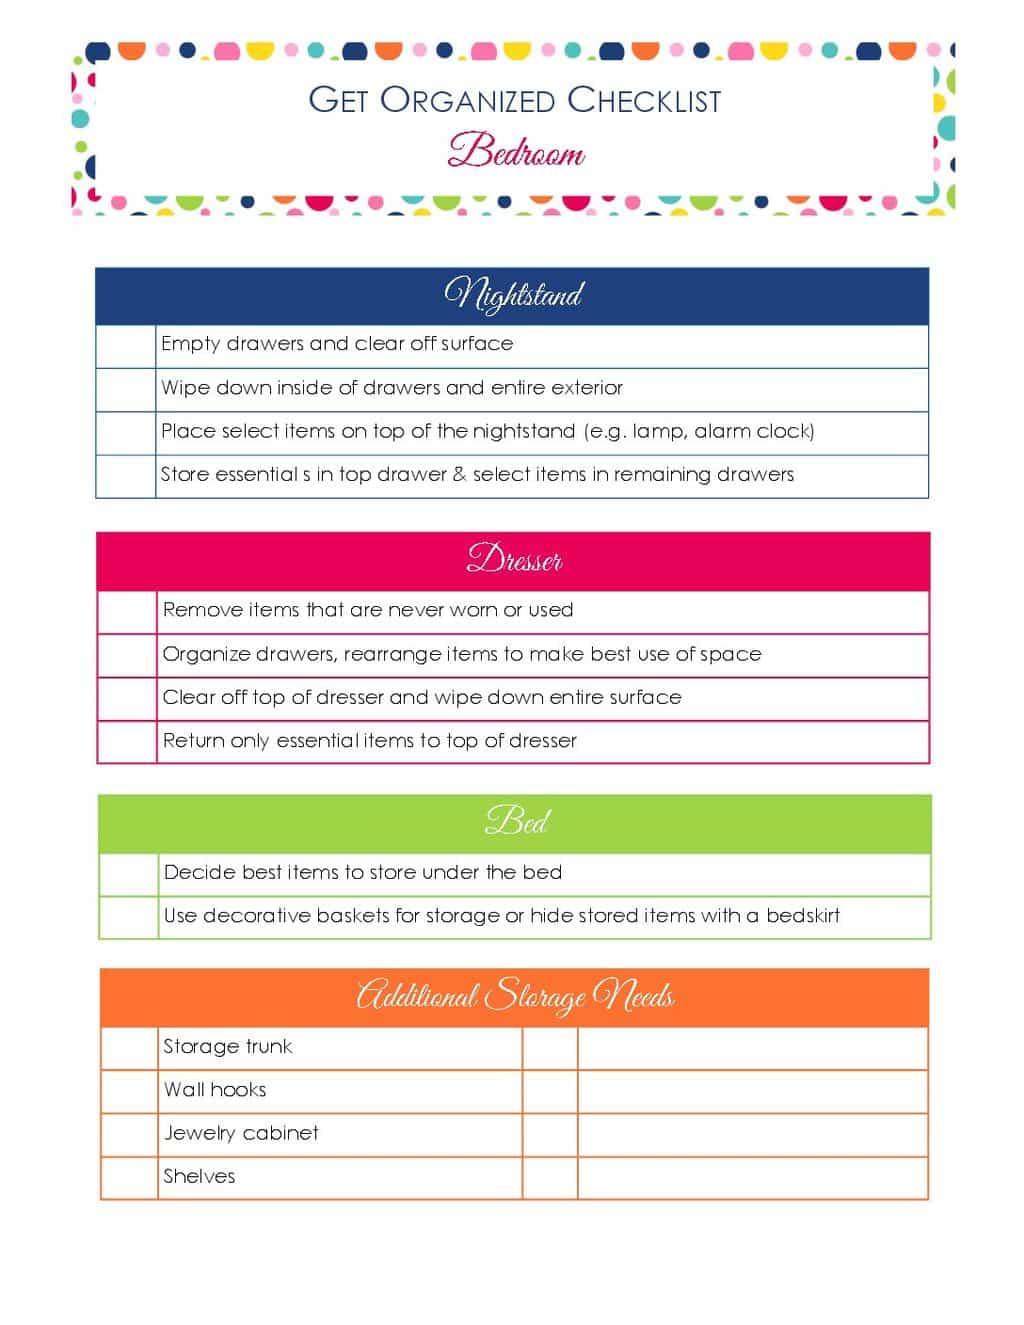 printable Get Organized Checklist for Your Bedroom